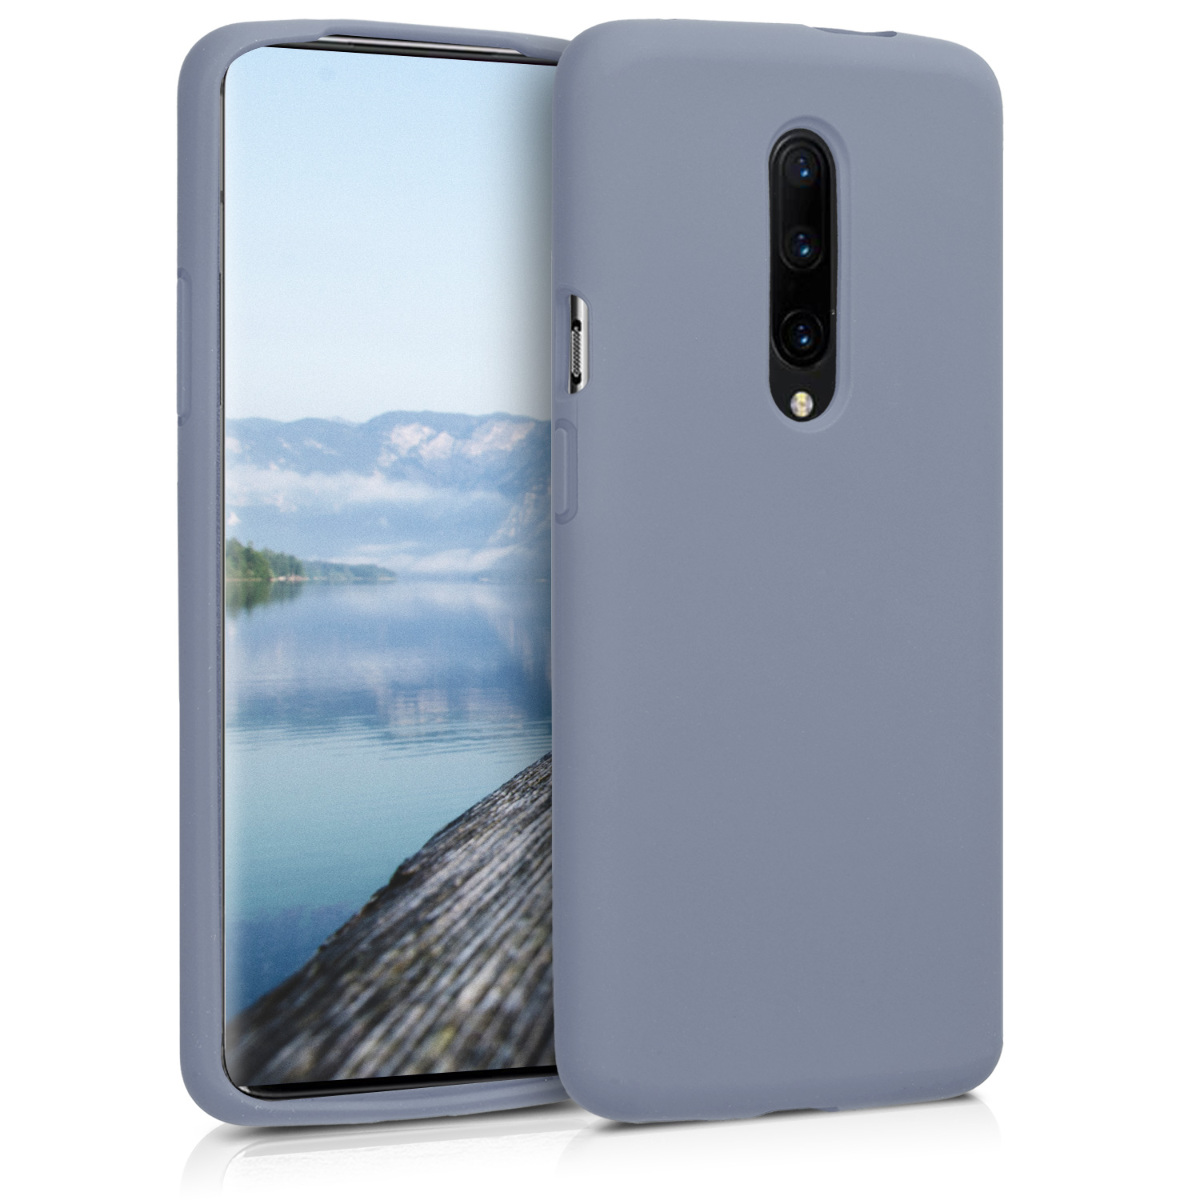 KW Θήκη Σιλικόνης OnePlus 7 Pro - Soft Flexible Rubber Protective Cover - Lavender Grey (48595.130)